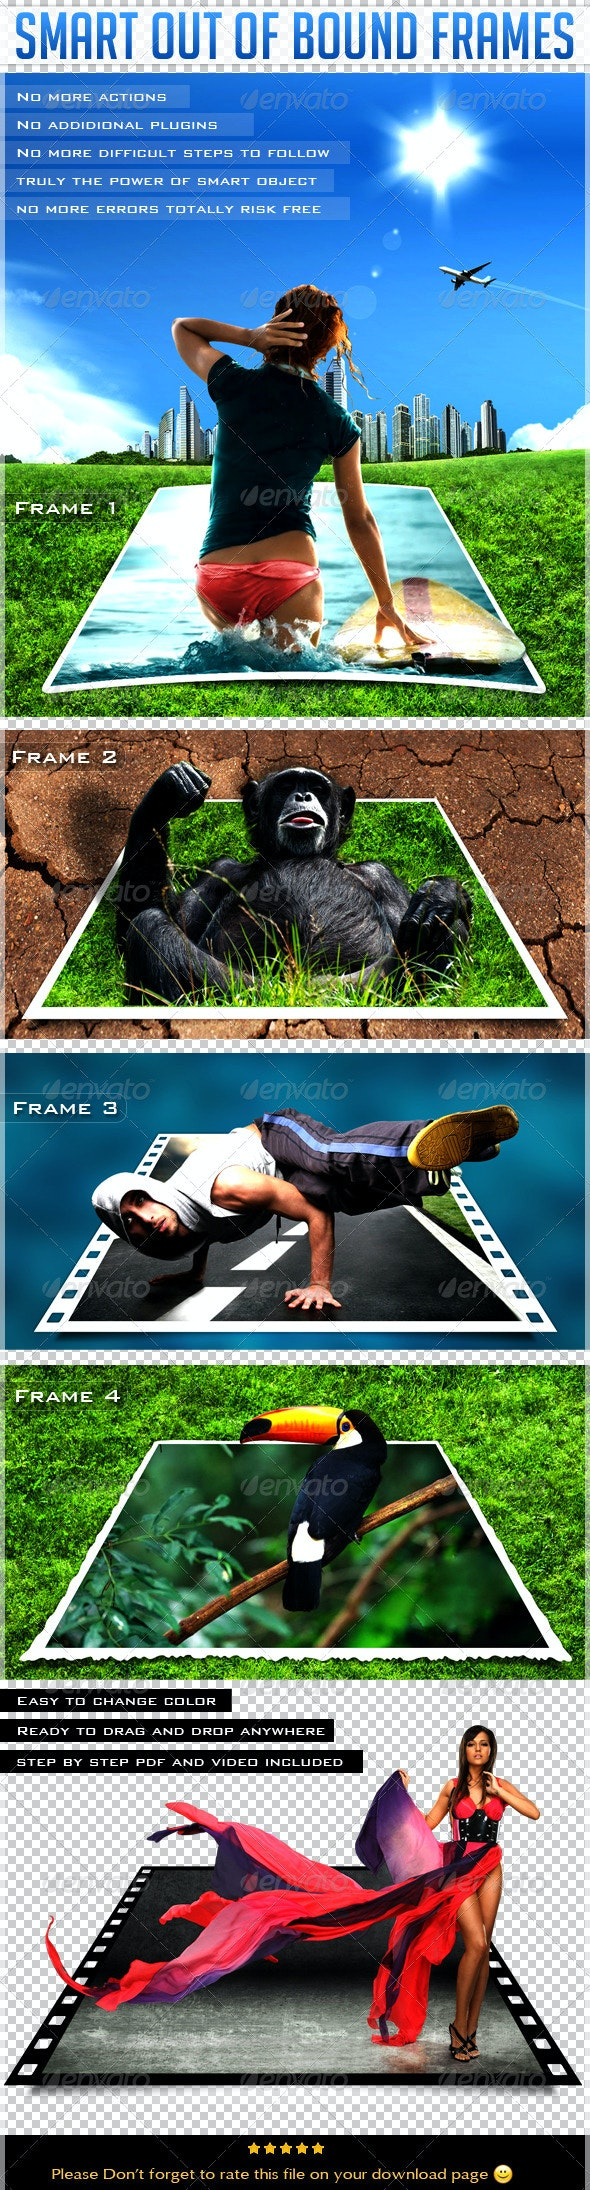 Smart Out Of Bound Frames - Photo Templates Graphics